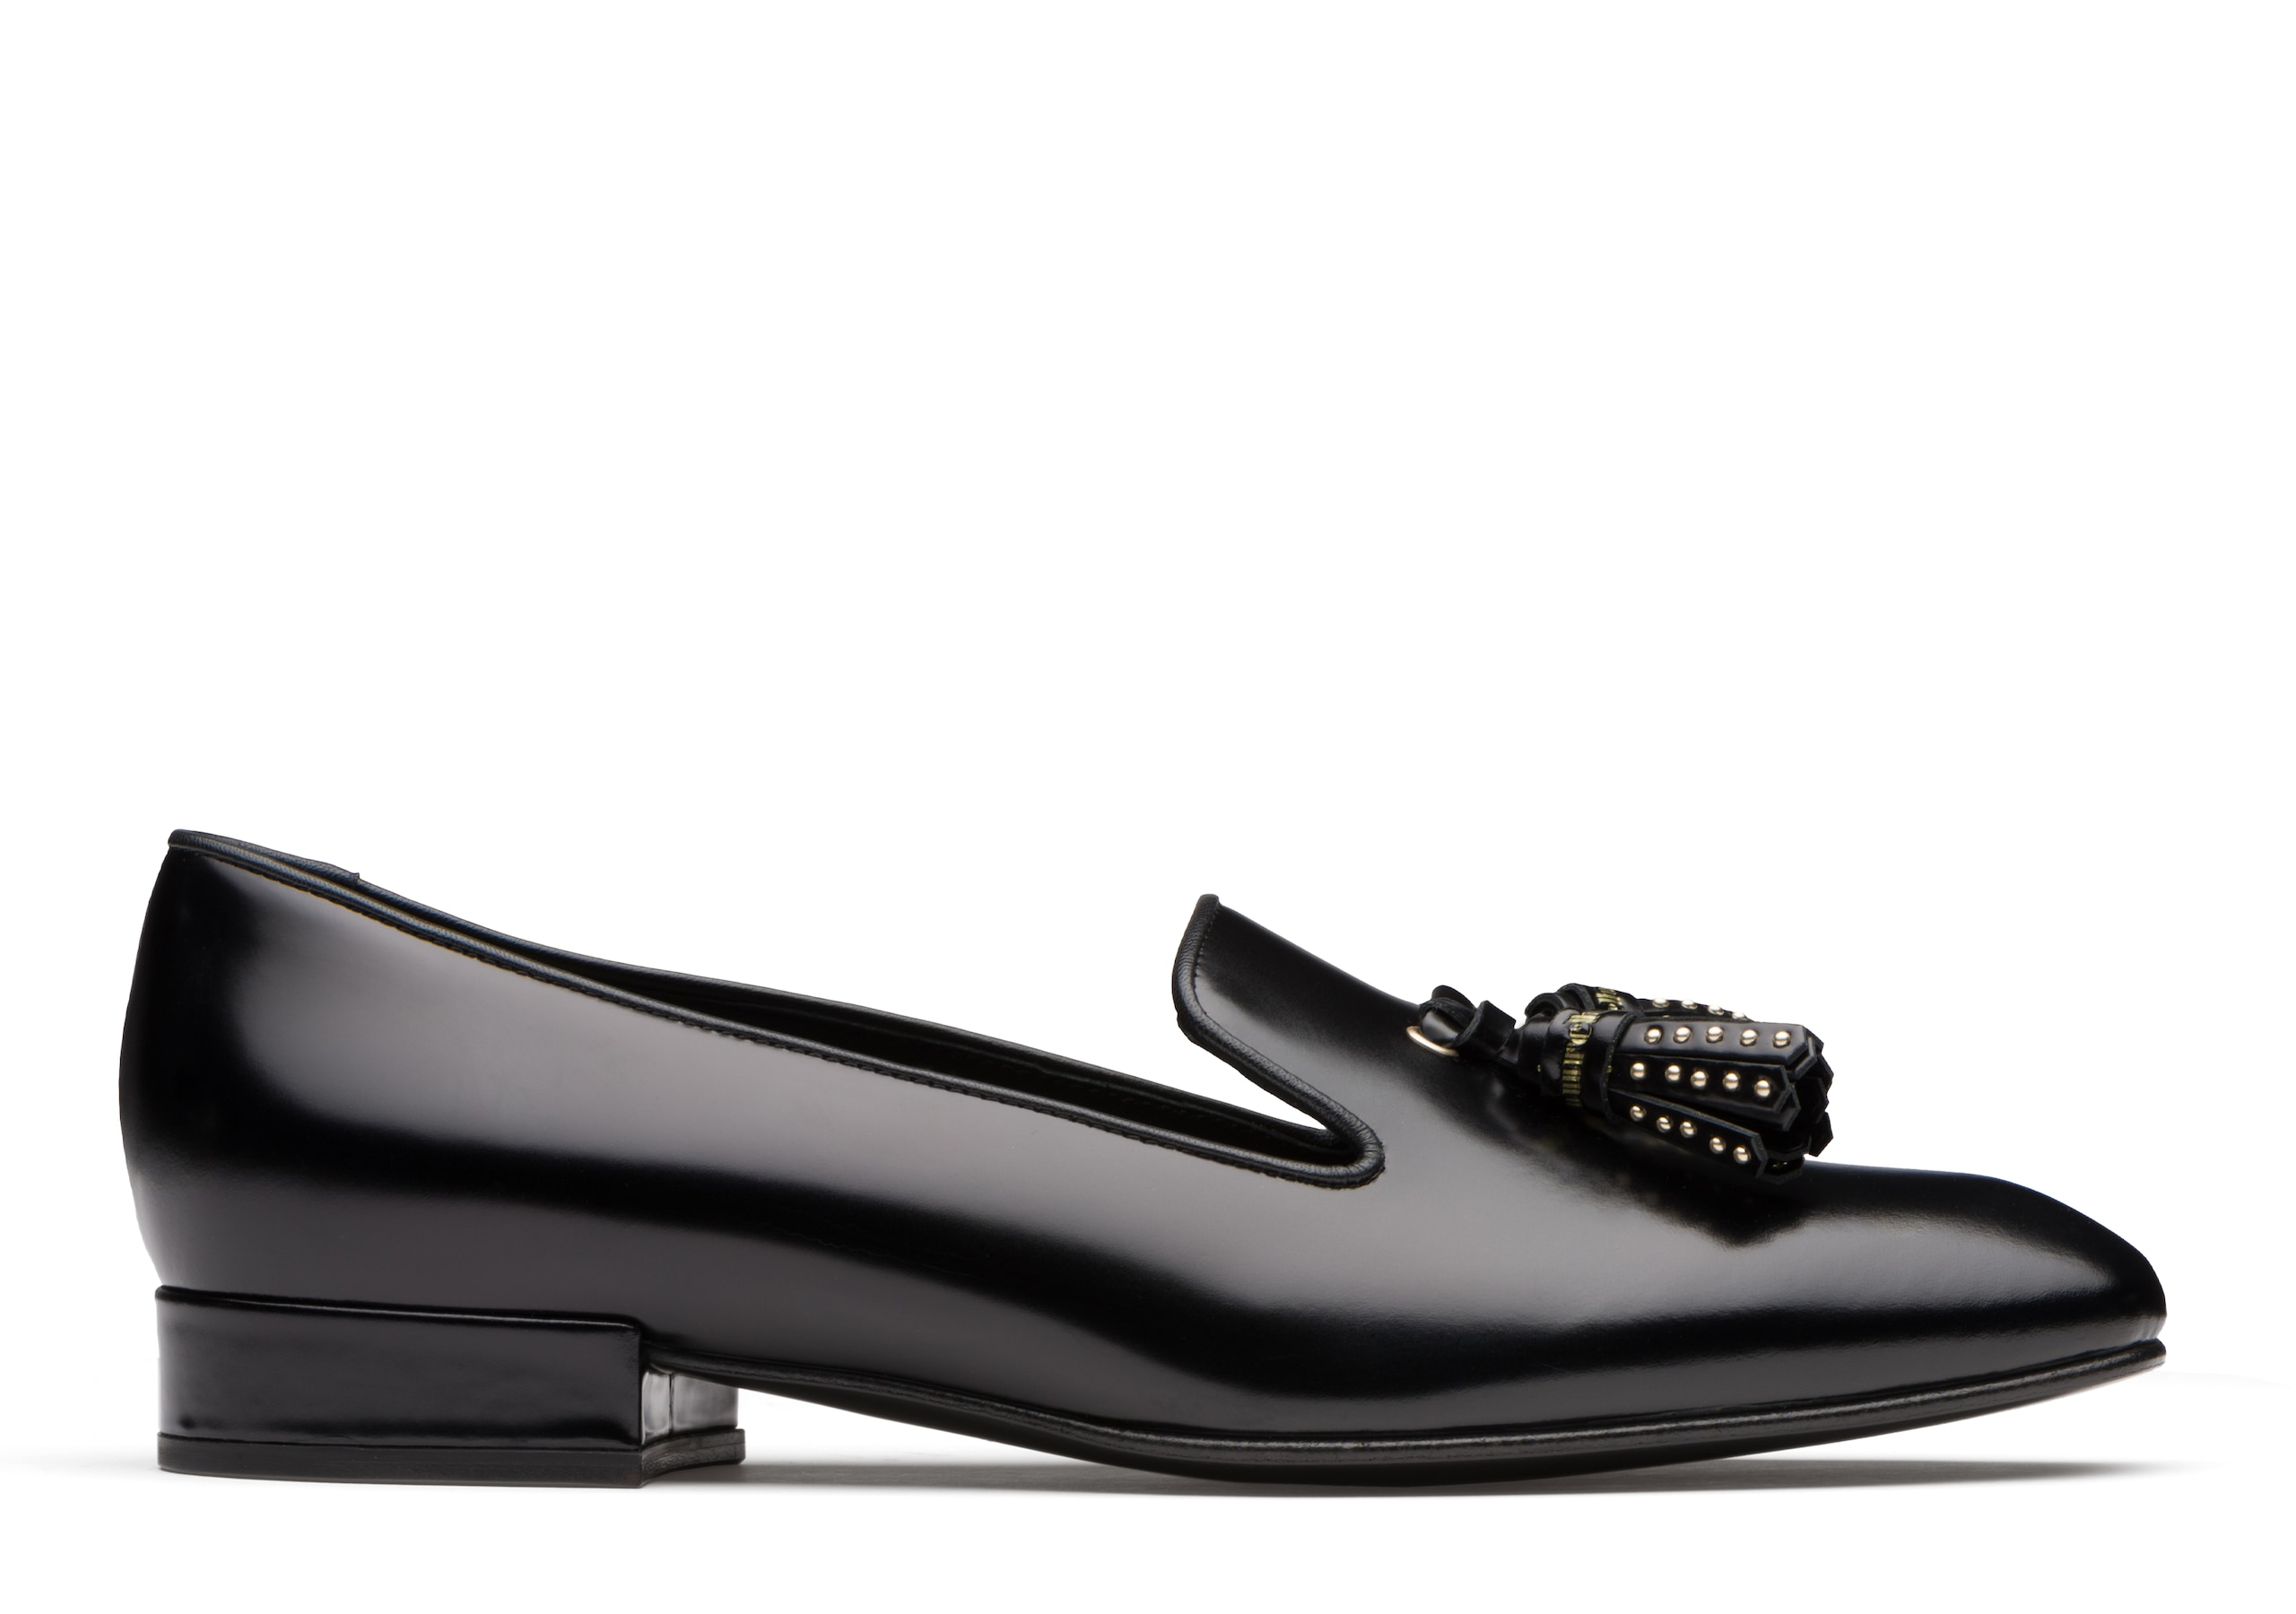 Cate Church's Polished Fumè Slip On Loafer Black